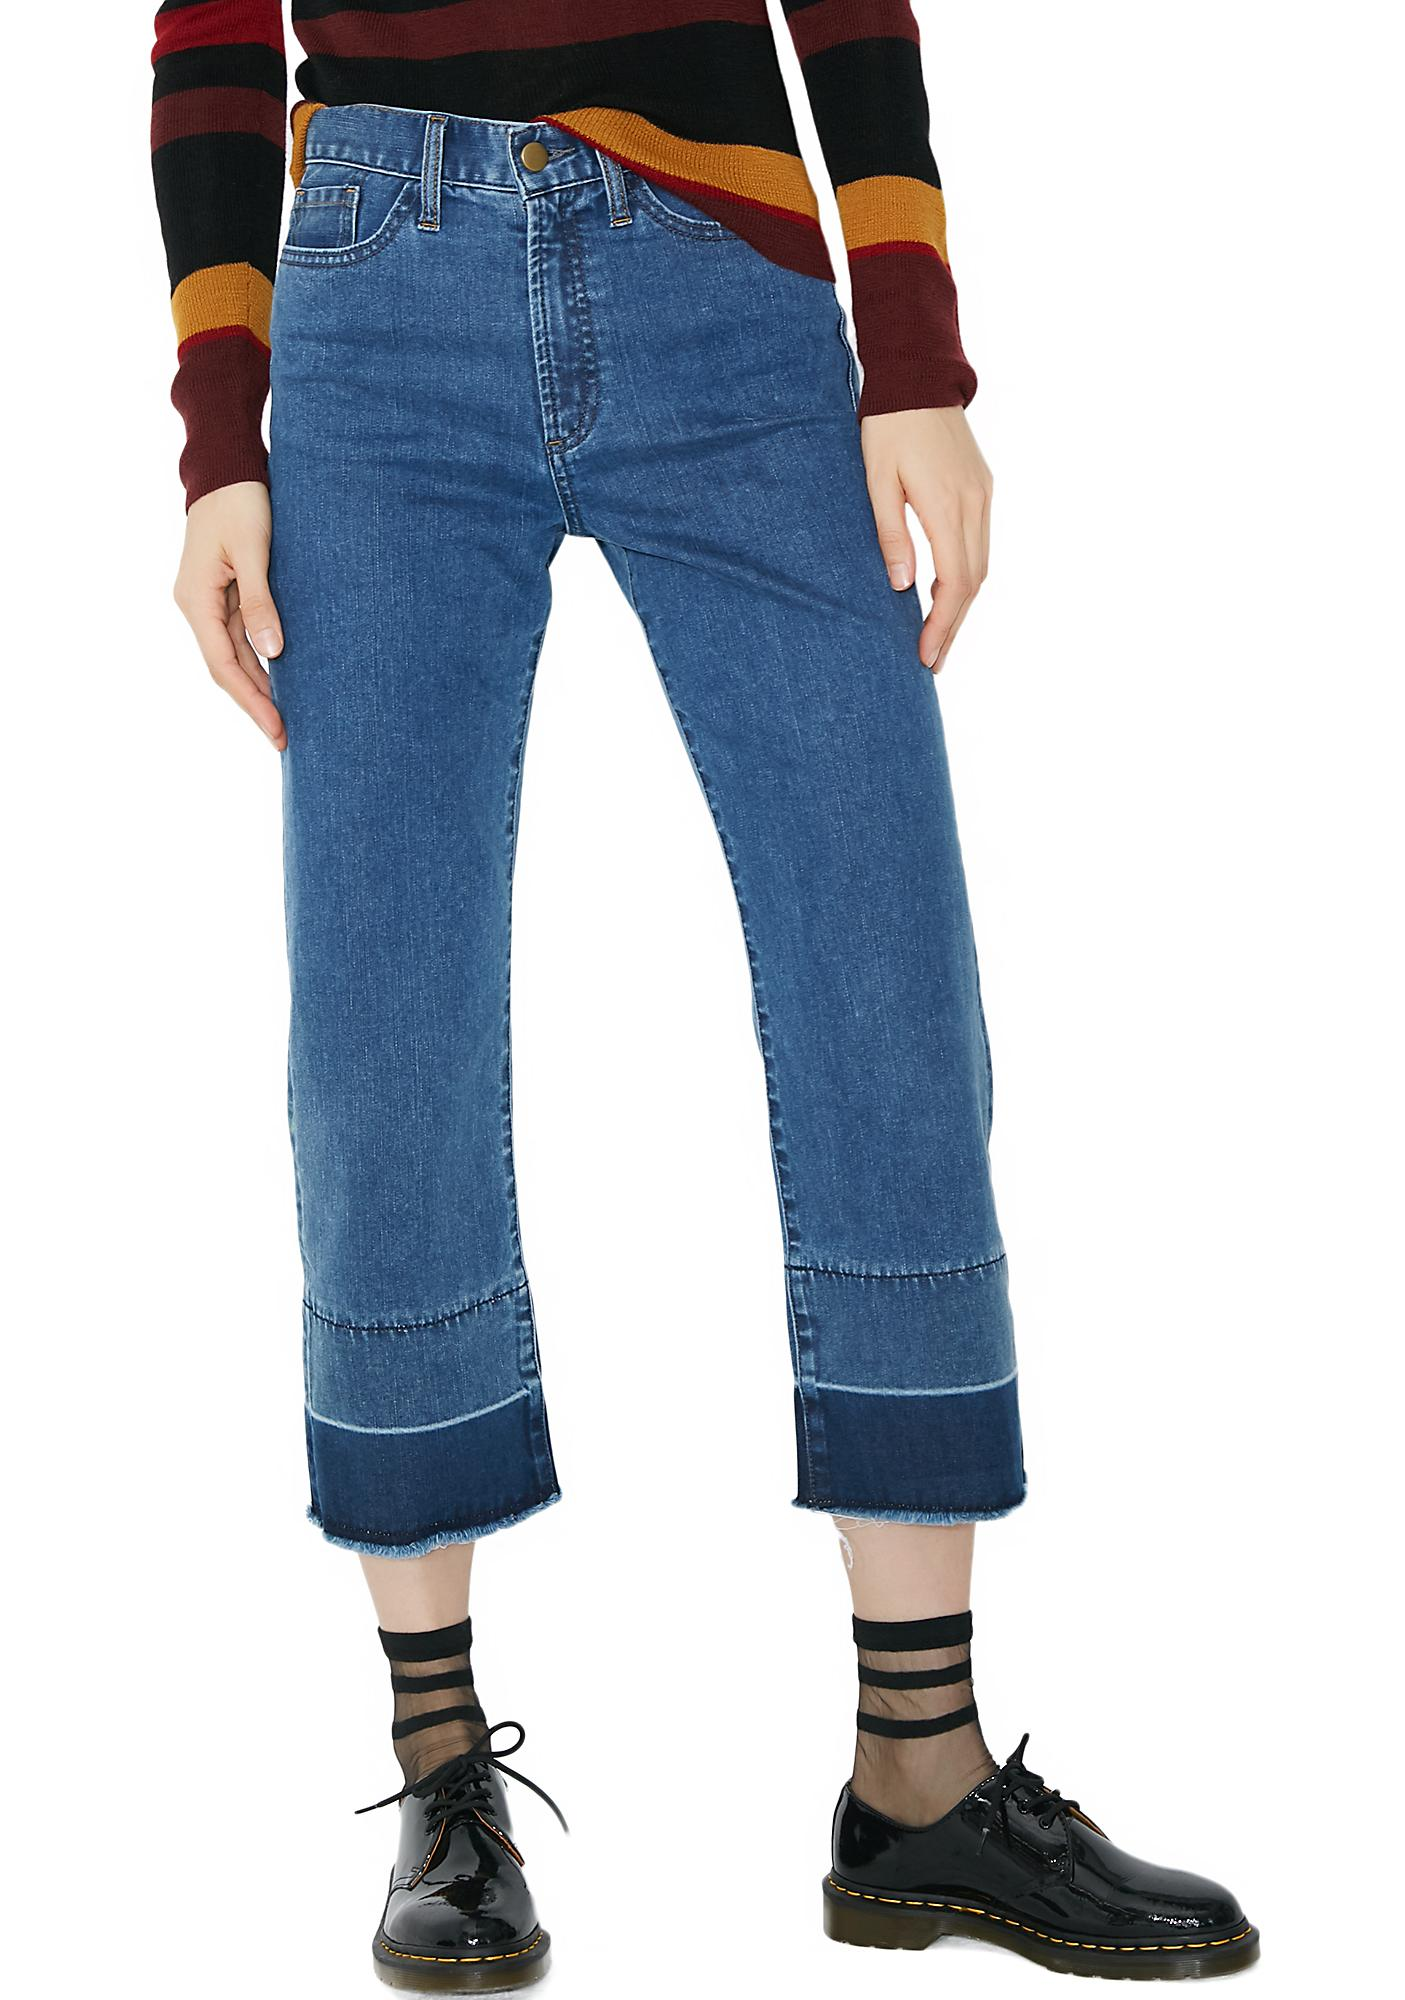 EVIDNT Dark Denim Stitch Flare Jeans